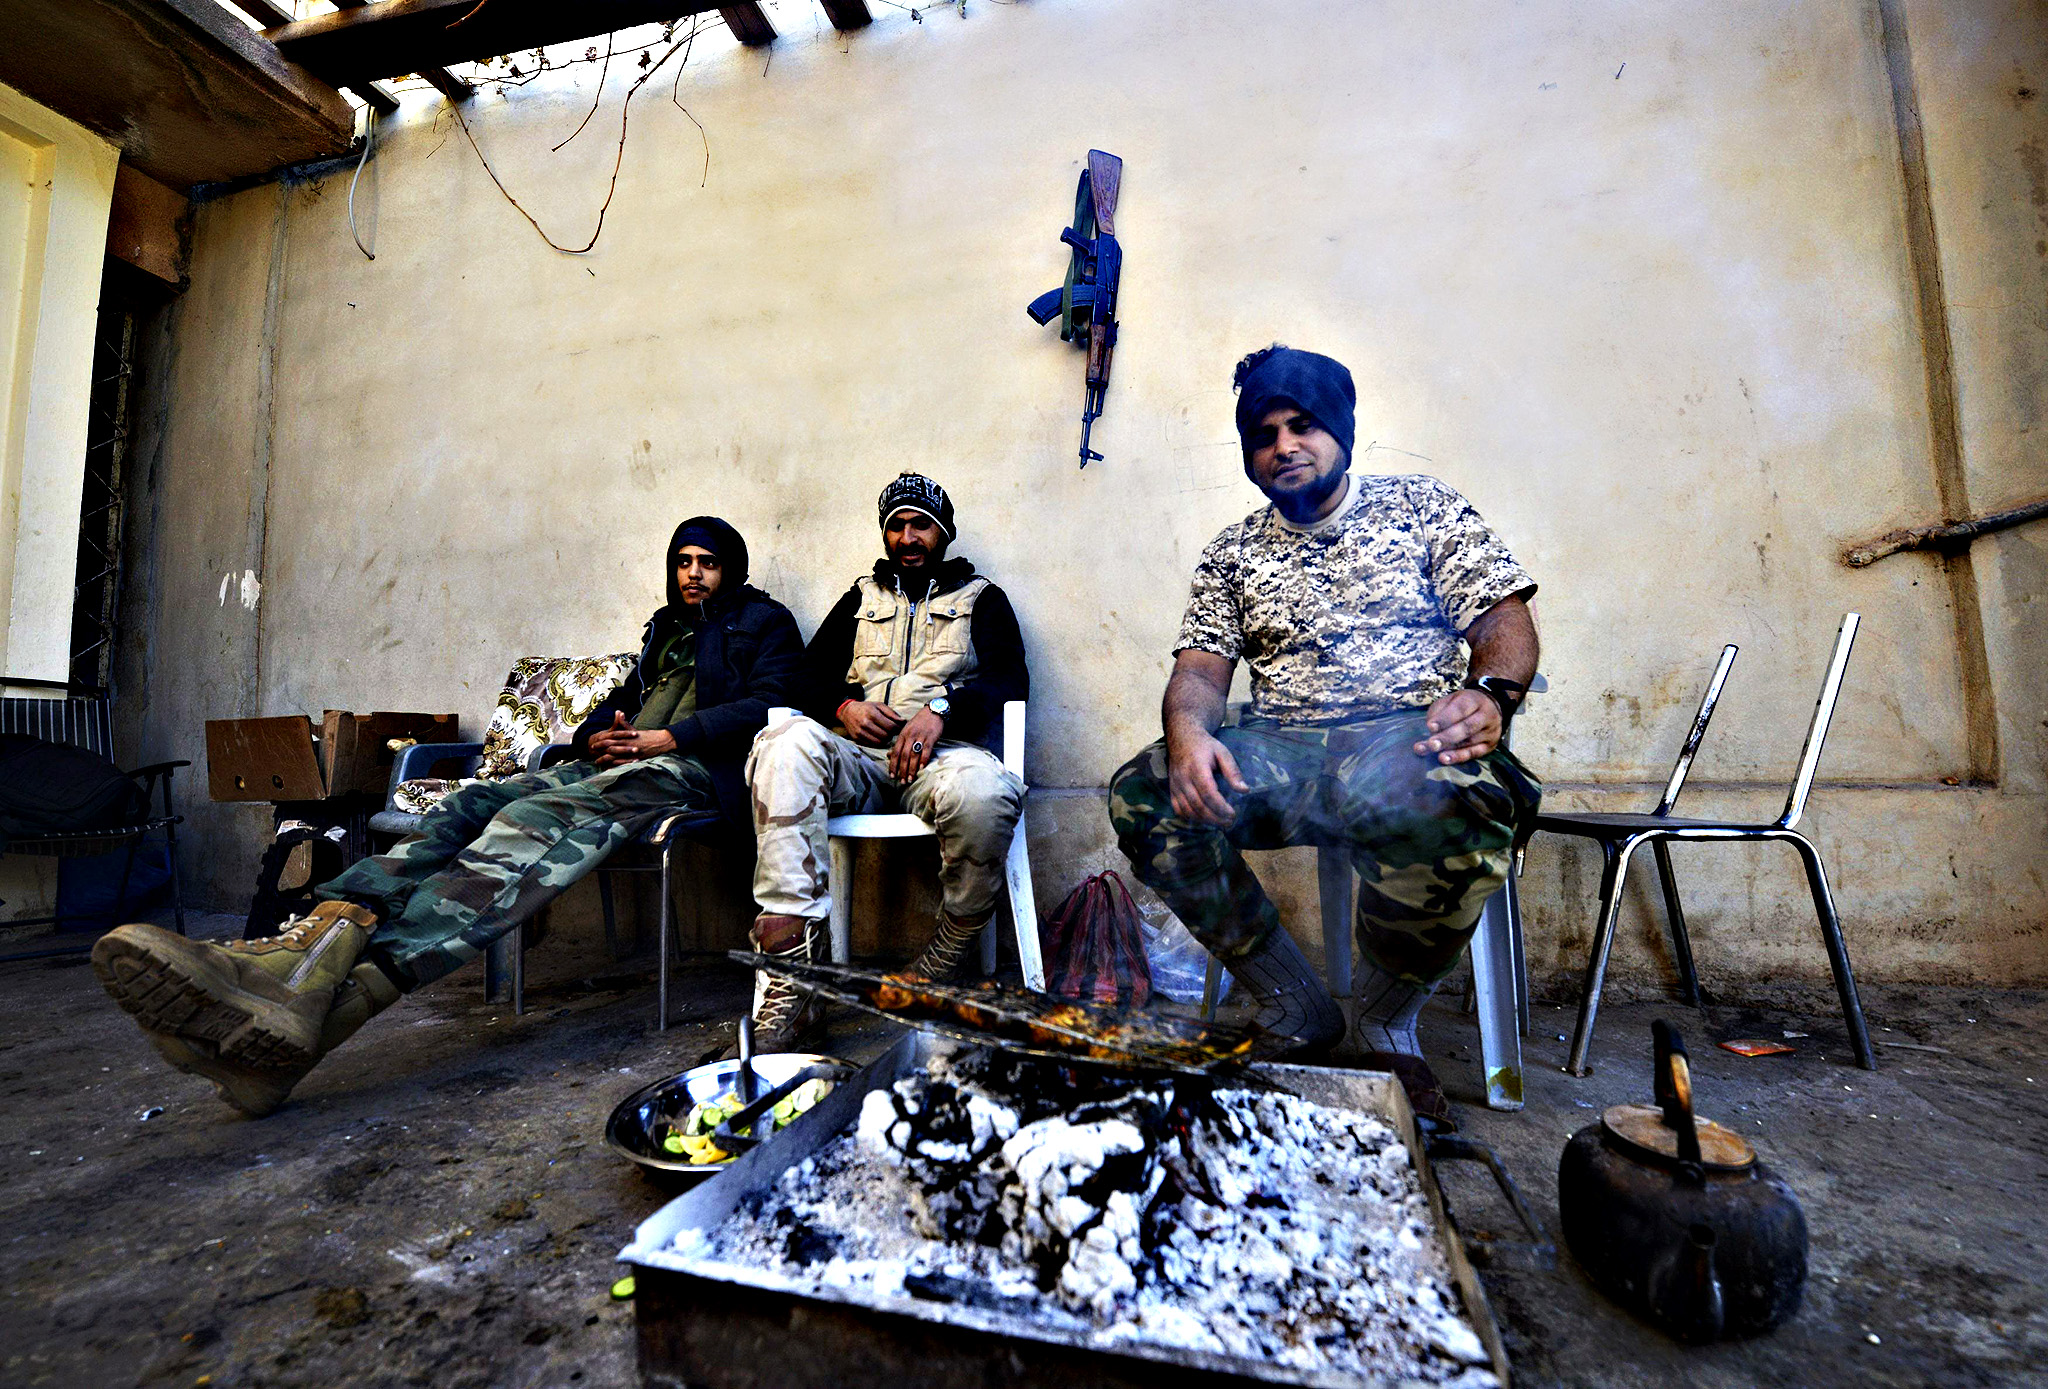 Members of Libyan pro-government forces, who are backed by the locals, sit together during clashes with the Shura Council of Libyan Revolutionaries in Benghazi...Members of Libyan pro-government forces, who are backed by the locals, sit together during clashes with the Shura Council of Libyan Revolutionaries in the streets of Benghazi January 19, 2015. The Shura Council of Libyan Revolutionaries is an alliance of former anti-Gaddafi rebels who have joined forces with Islamist group Ansar al-Sharia